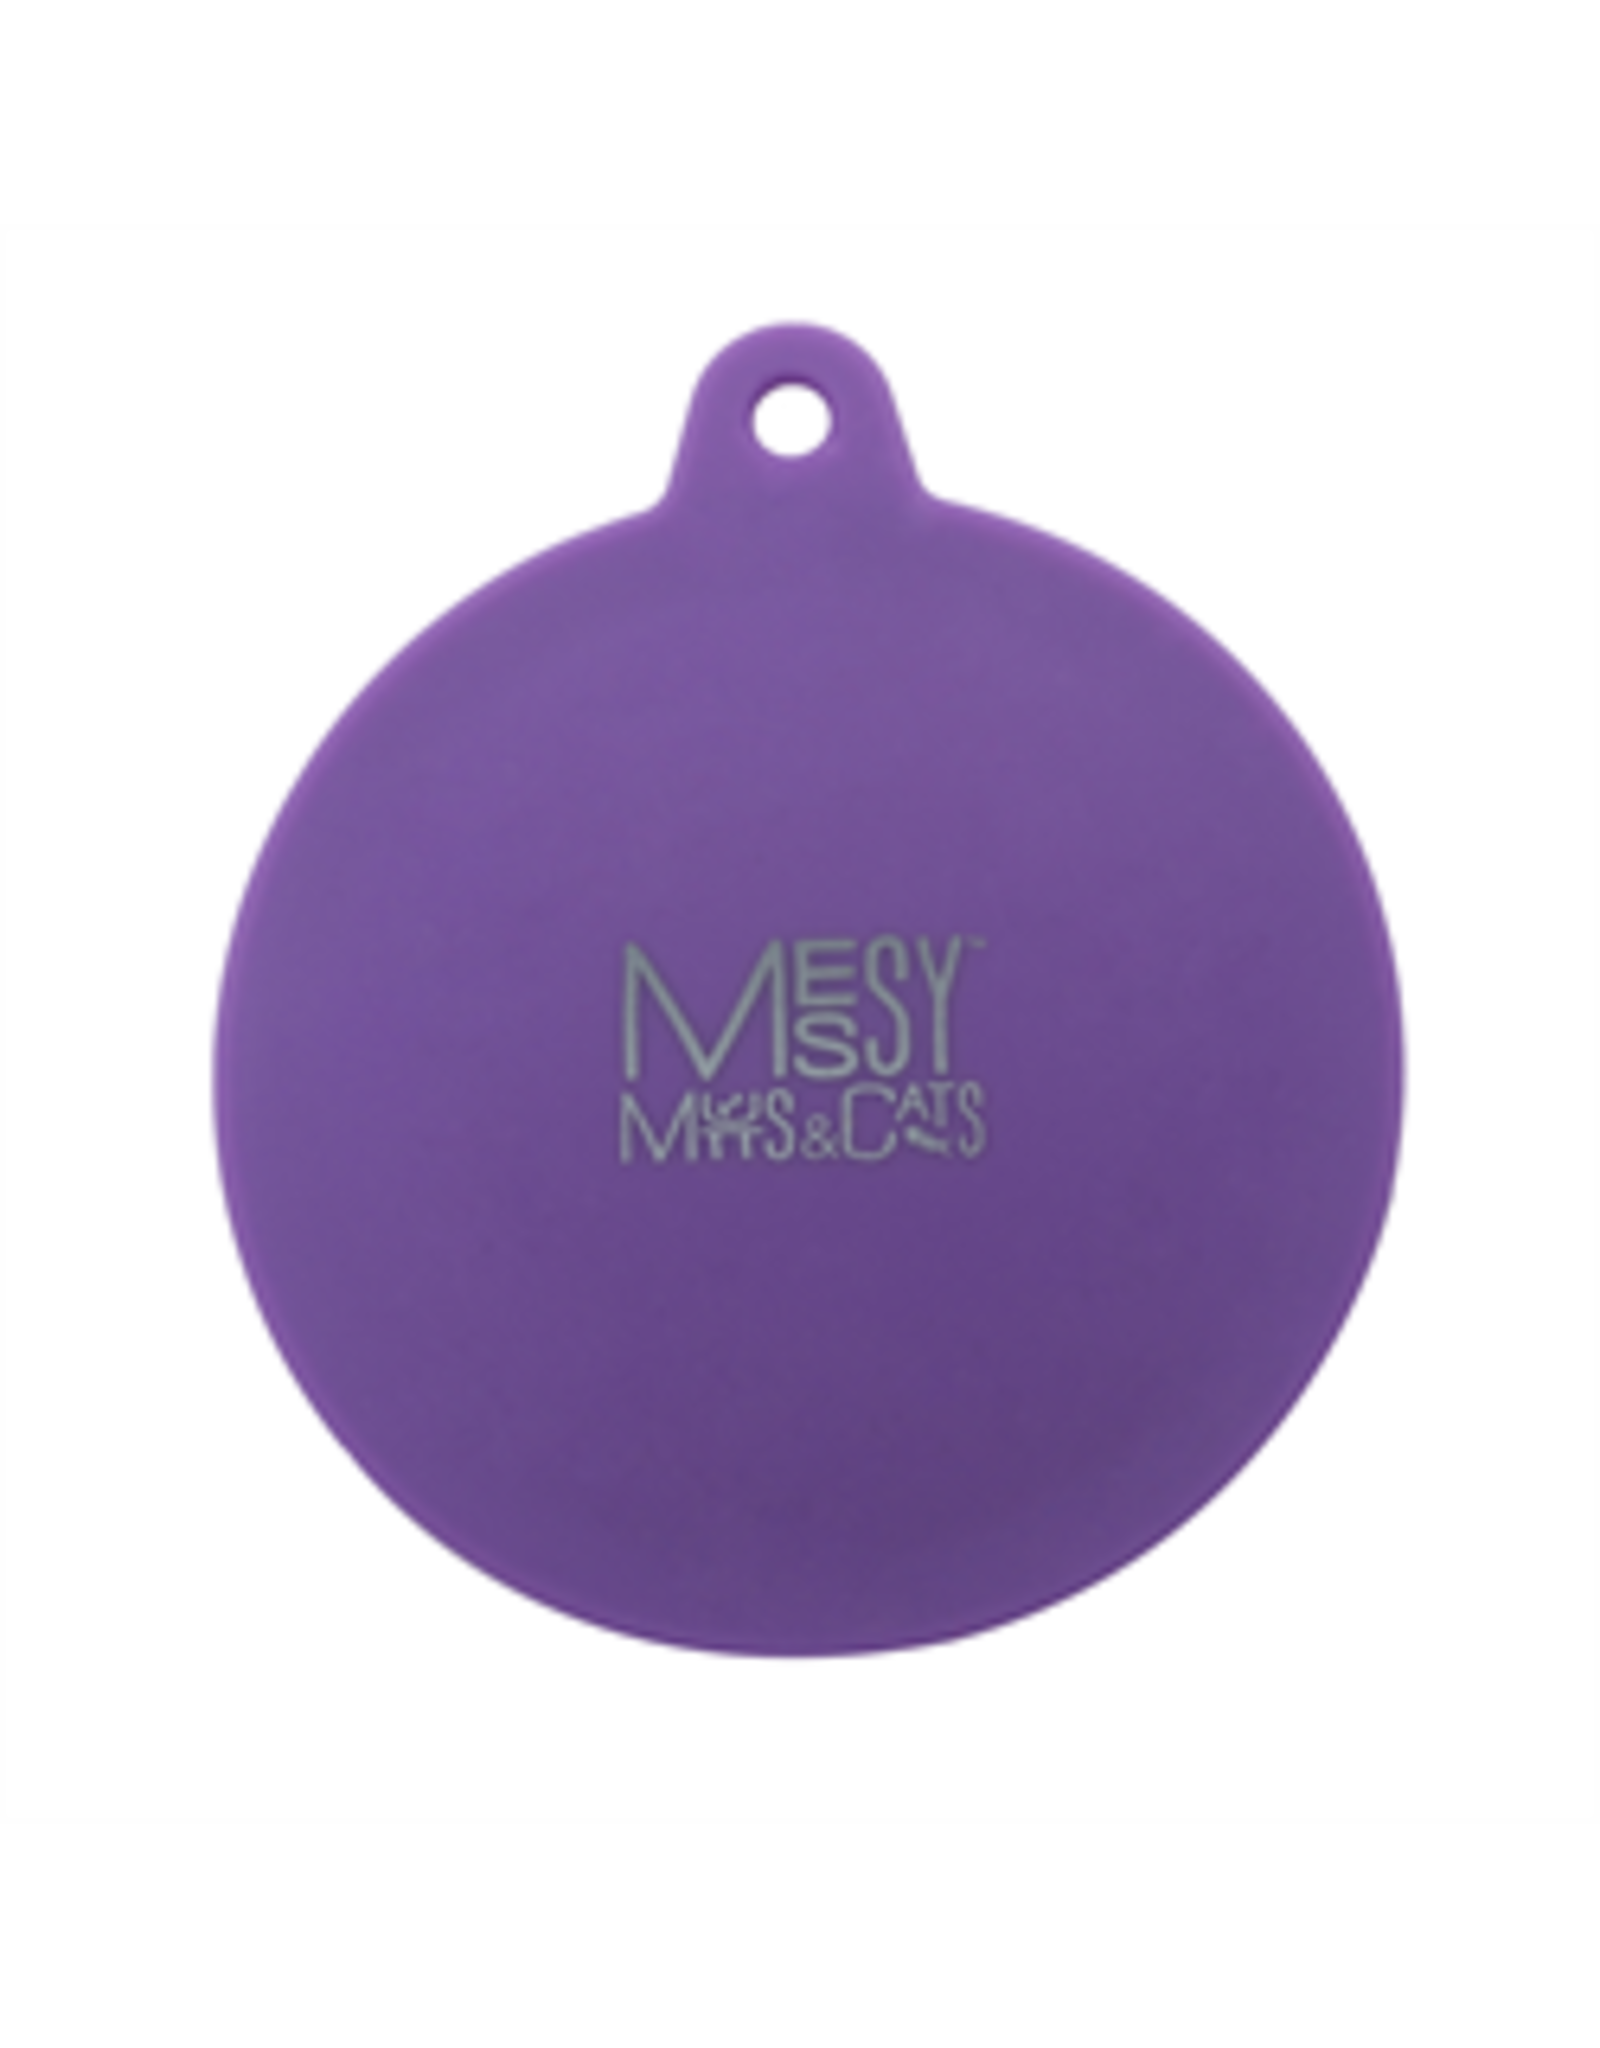 Messy Mutts Silicone Universal Can Cover